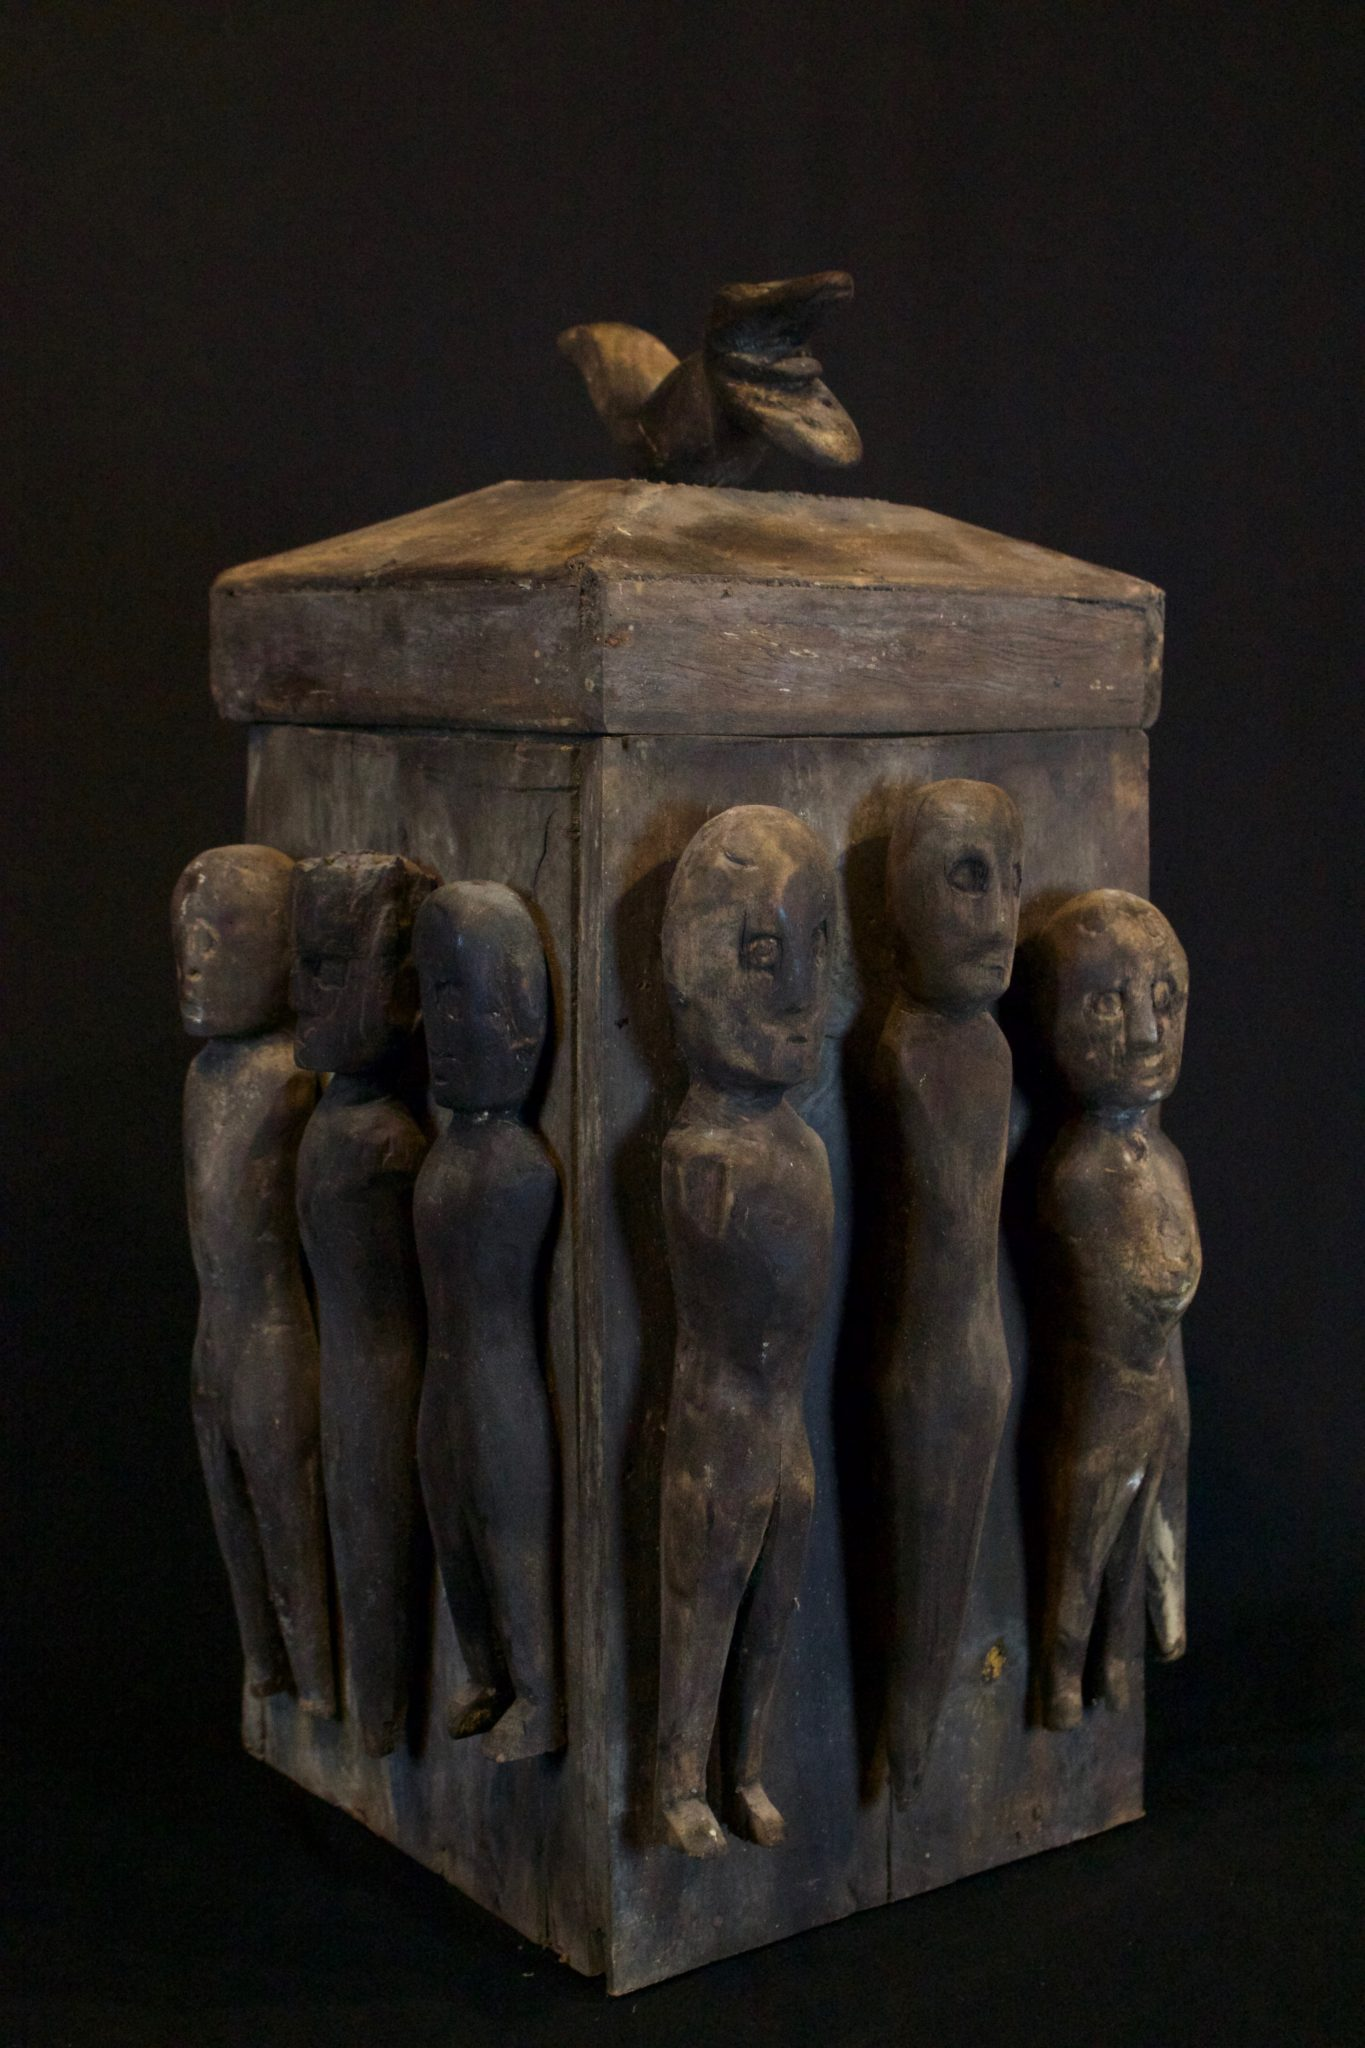 """'Lupong Manang' - Shaman's Medicine Carrier/Backpack with Healing Figures (rare), South Sulawesi, Indonesia, Toraja tribe, Mid 20th c, Wood, The Shaman made his own medicine kit to contain items for healing, protections and predictions – such as special teeth, stones and other items. The figures on the exterior correspond to illnesses and other conditions or ailments. 19"""" x 9 ½"""" x 10"""", $2200."""